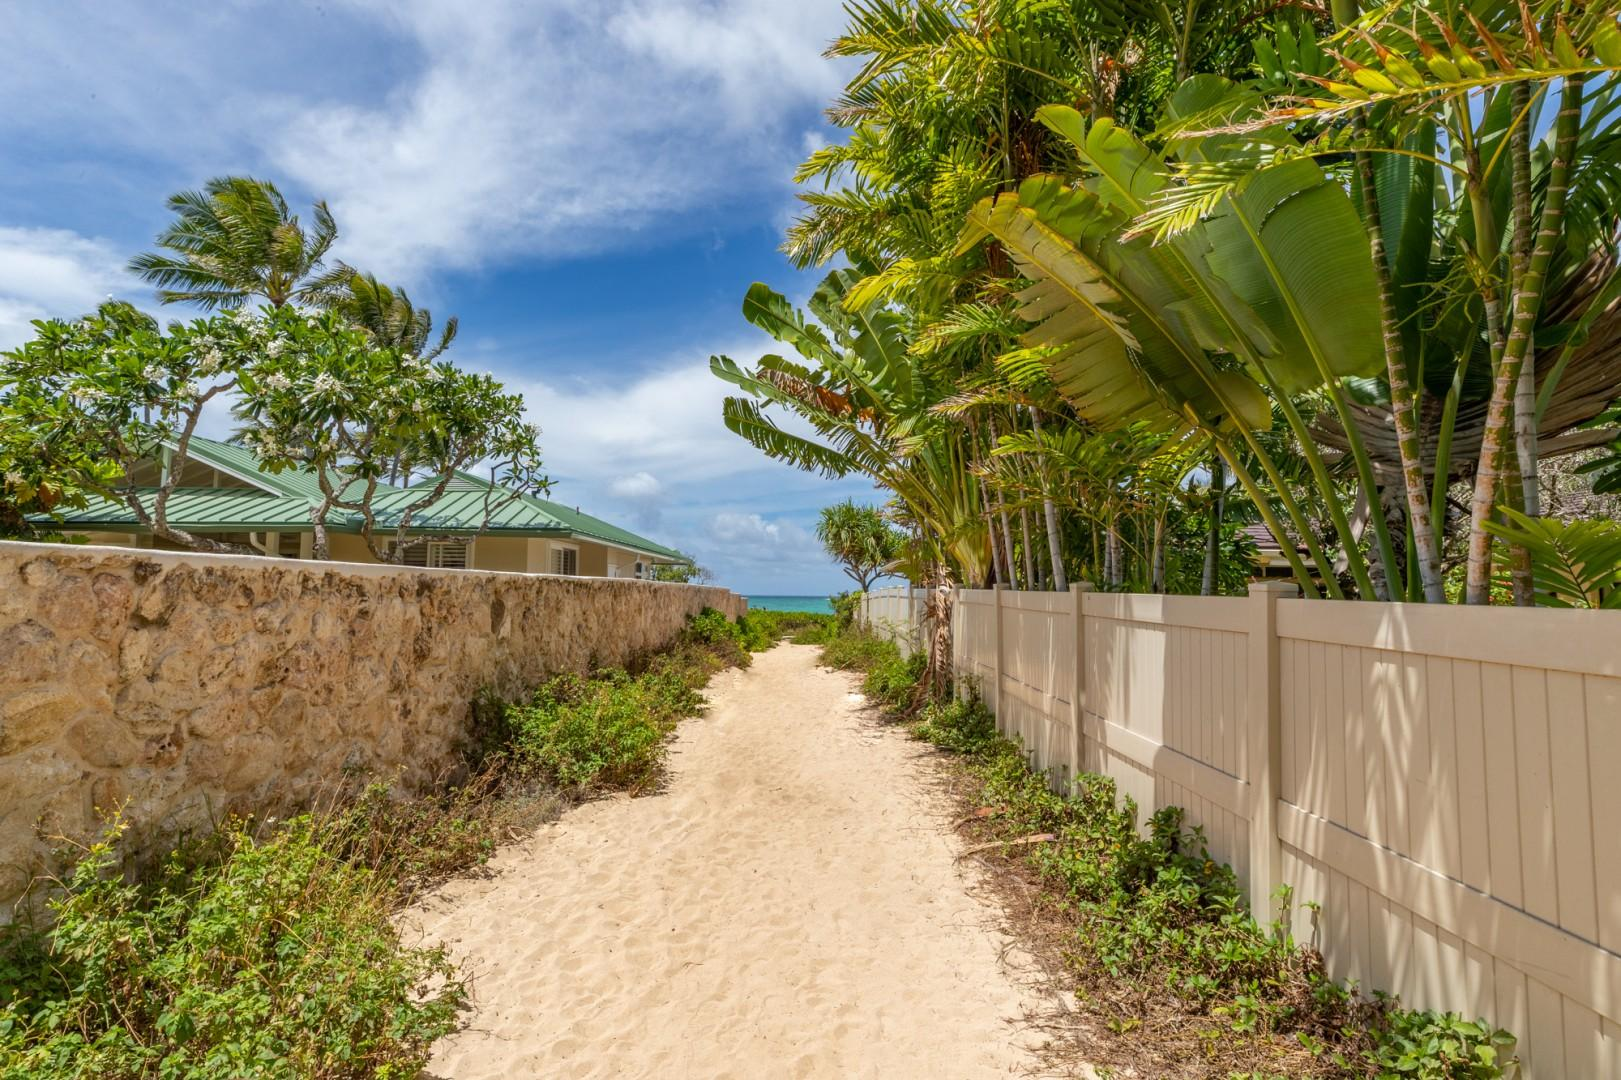 The sandy path leads to turquoise waters